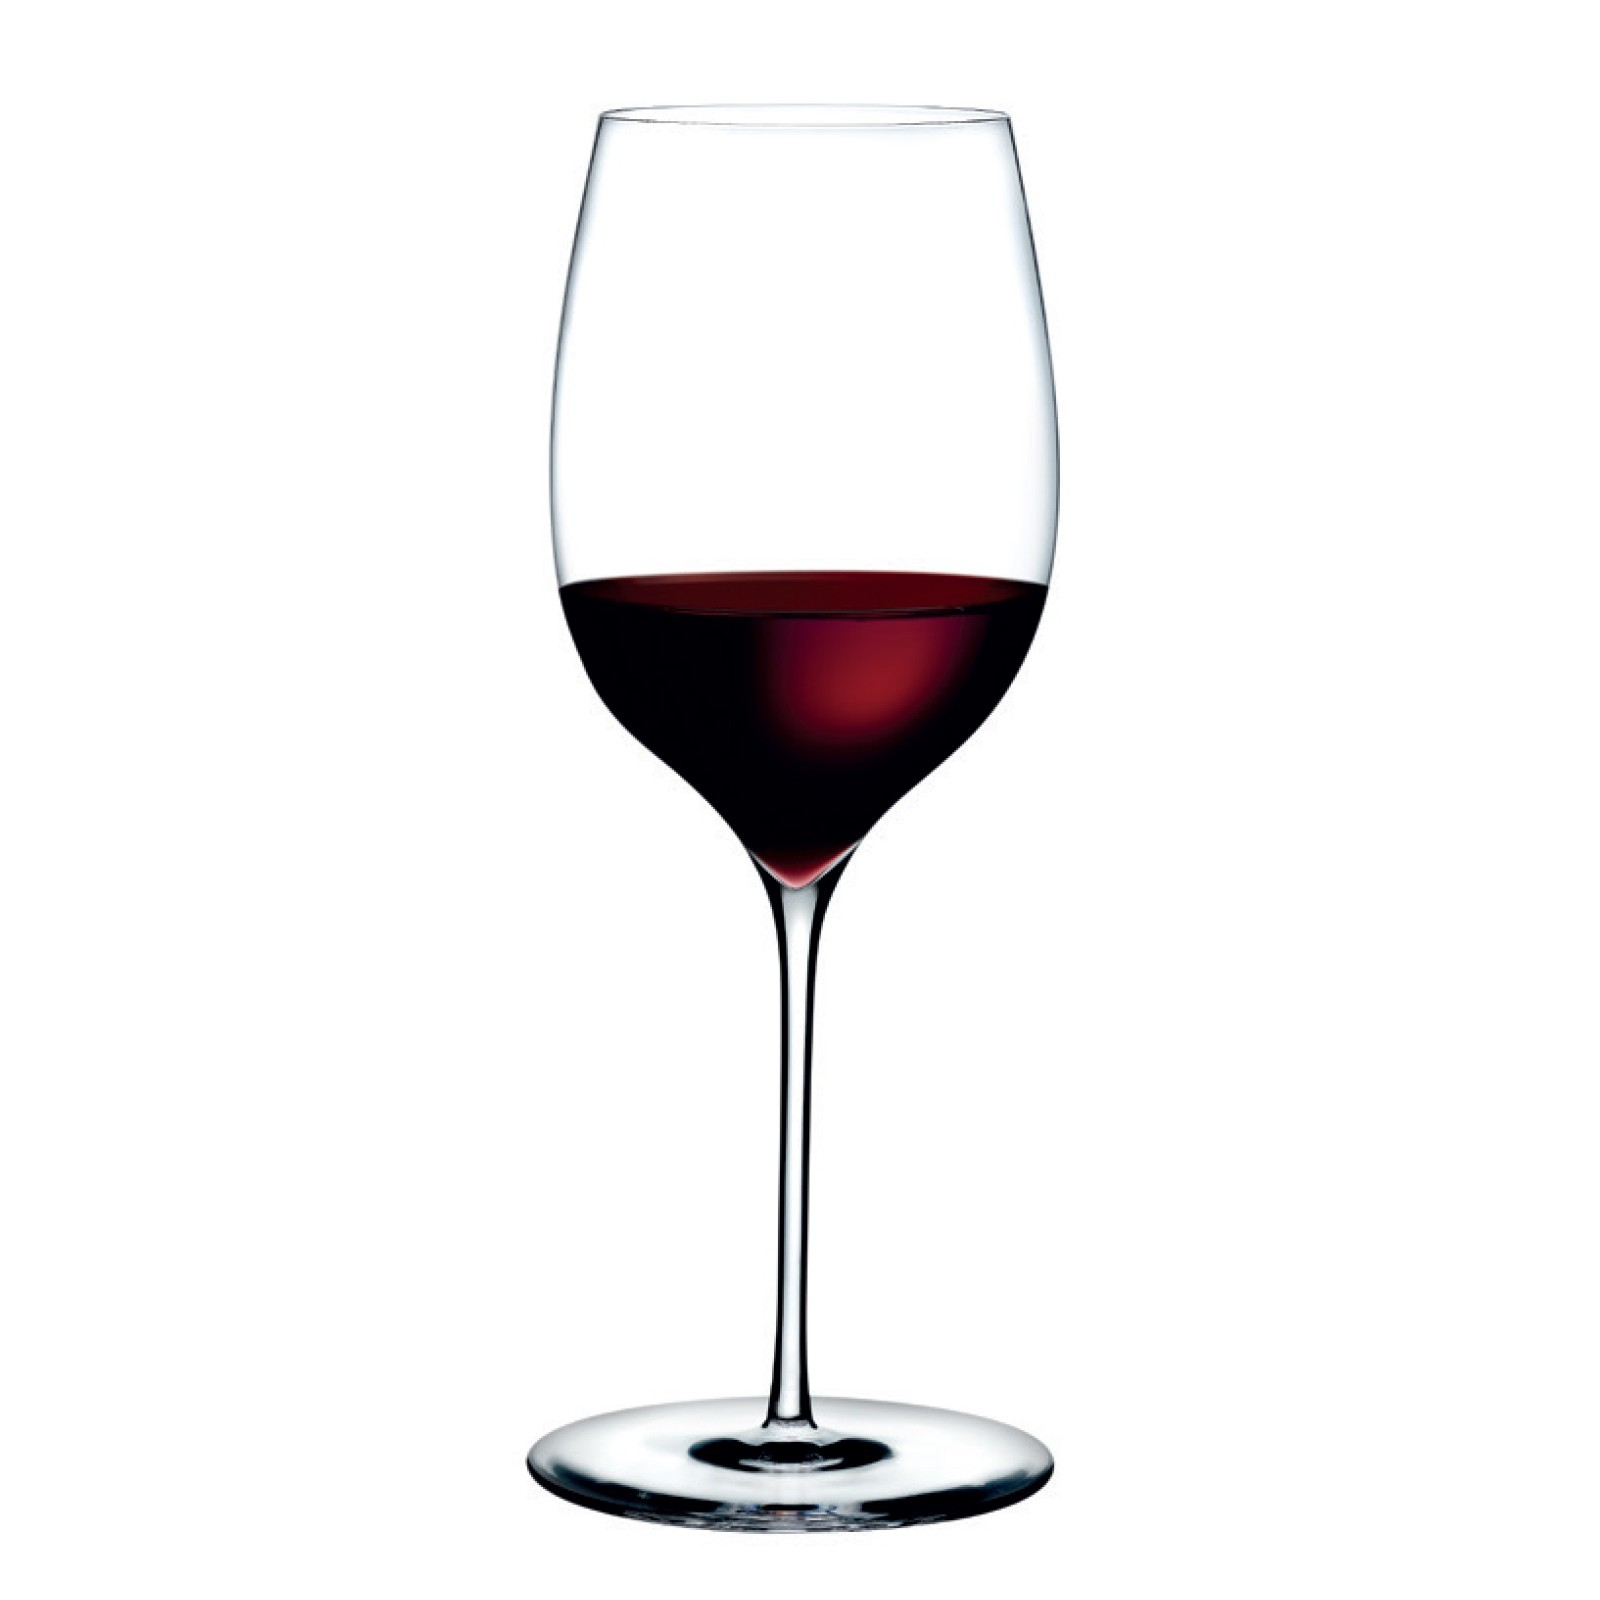 Made To Order 3 B x 9 1/2 H Dimple 23.75 Oz. Red Wine/Case of 8